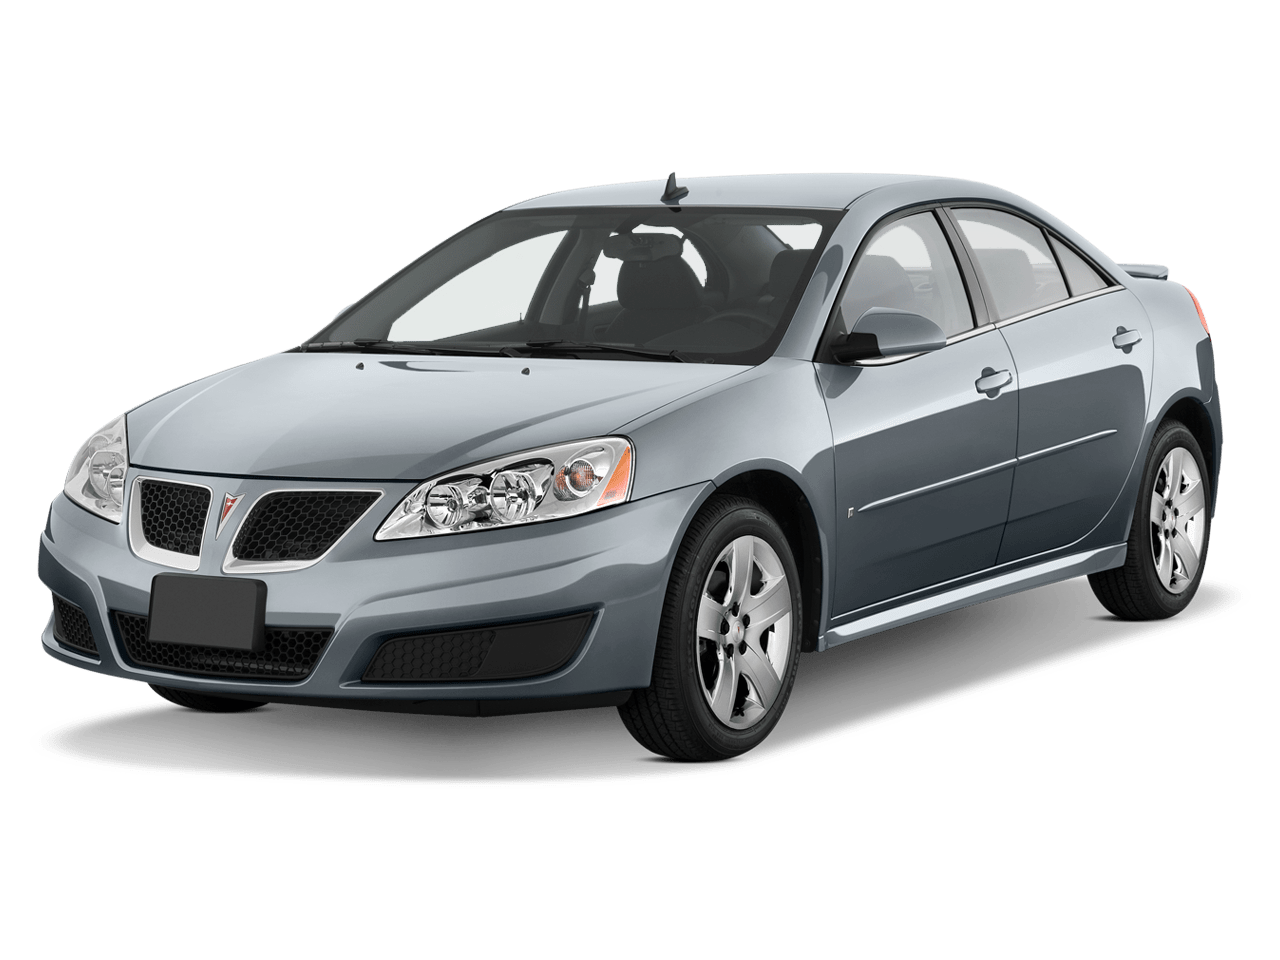 2009 pontiac g6 reviews and rating motortrend pontiac g6 convertible power window wire diagrams [ 392:294 x 1280 Pixel ]